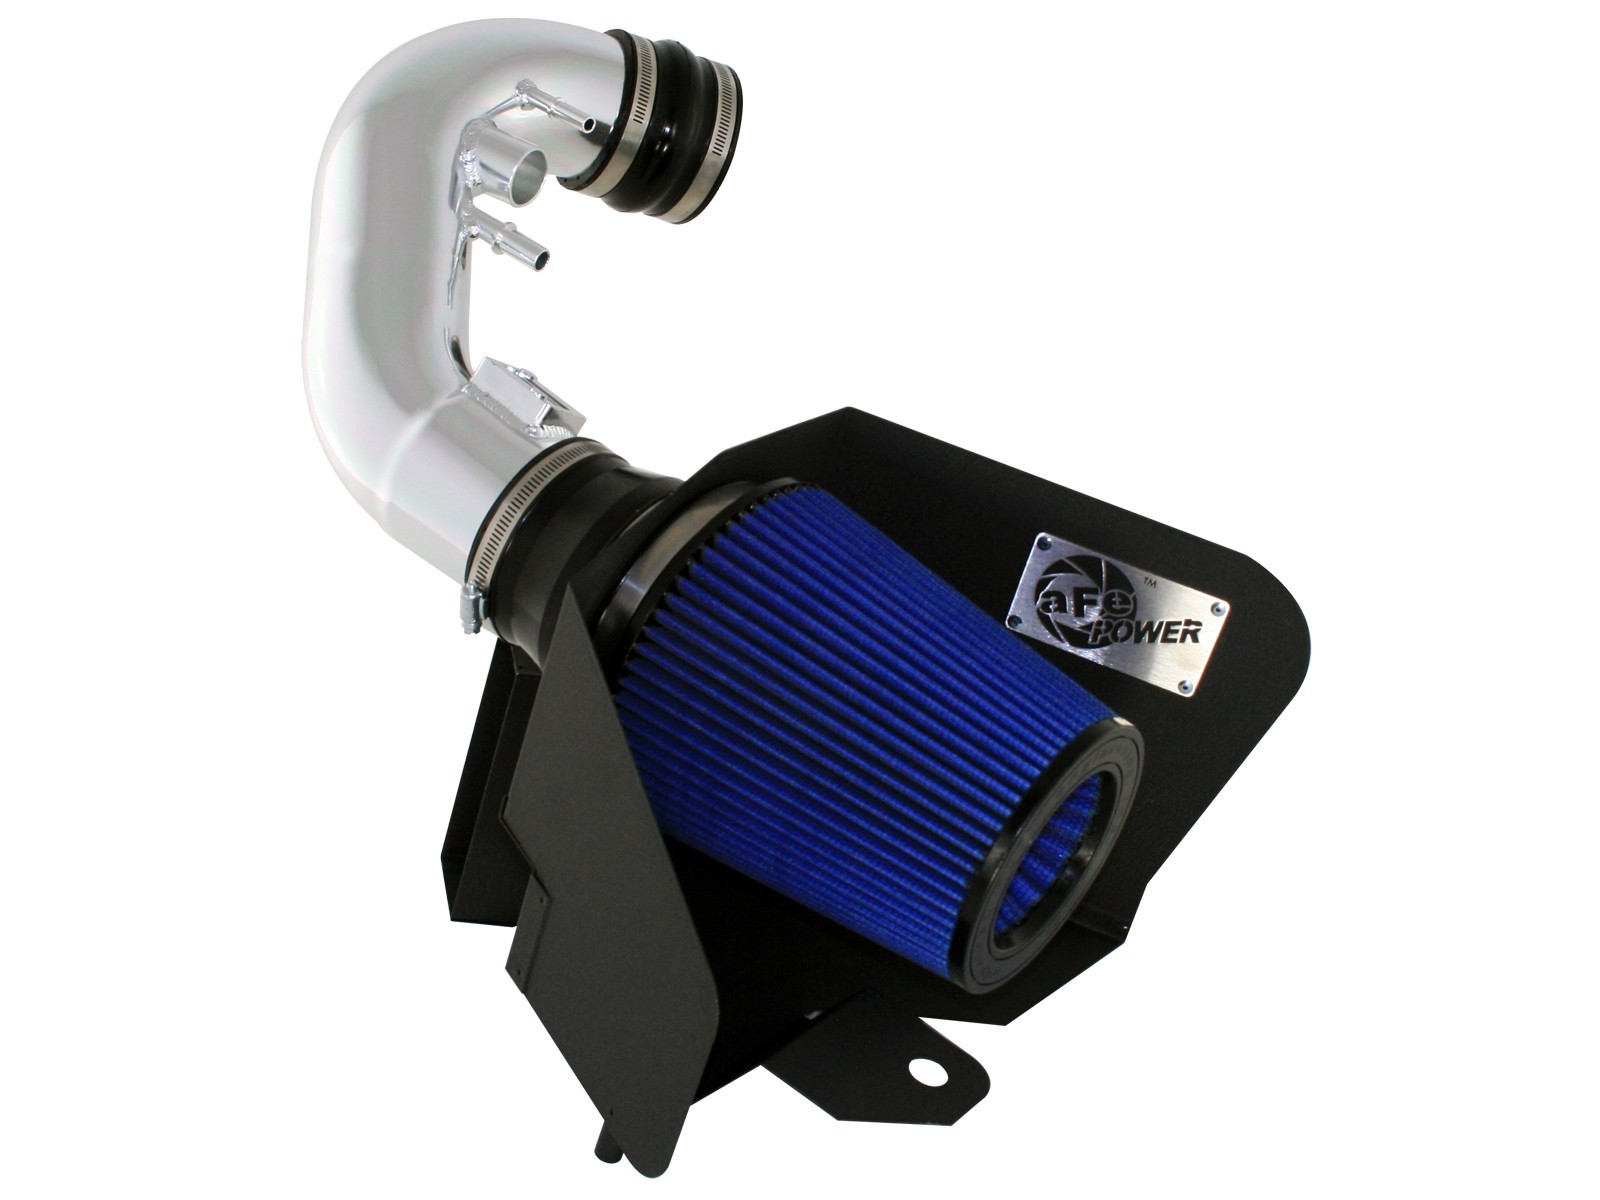 Car Air Intake System Diagram Afe Power 54 P Magnum force Stage 2 Pro 5r Cold Air Intake Of Car Air Intake System Diagram